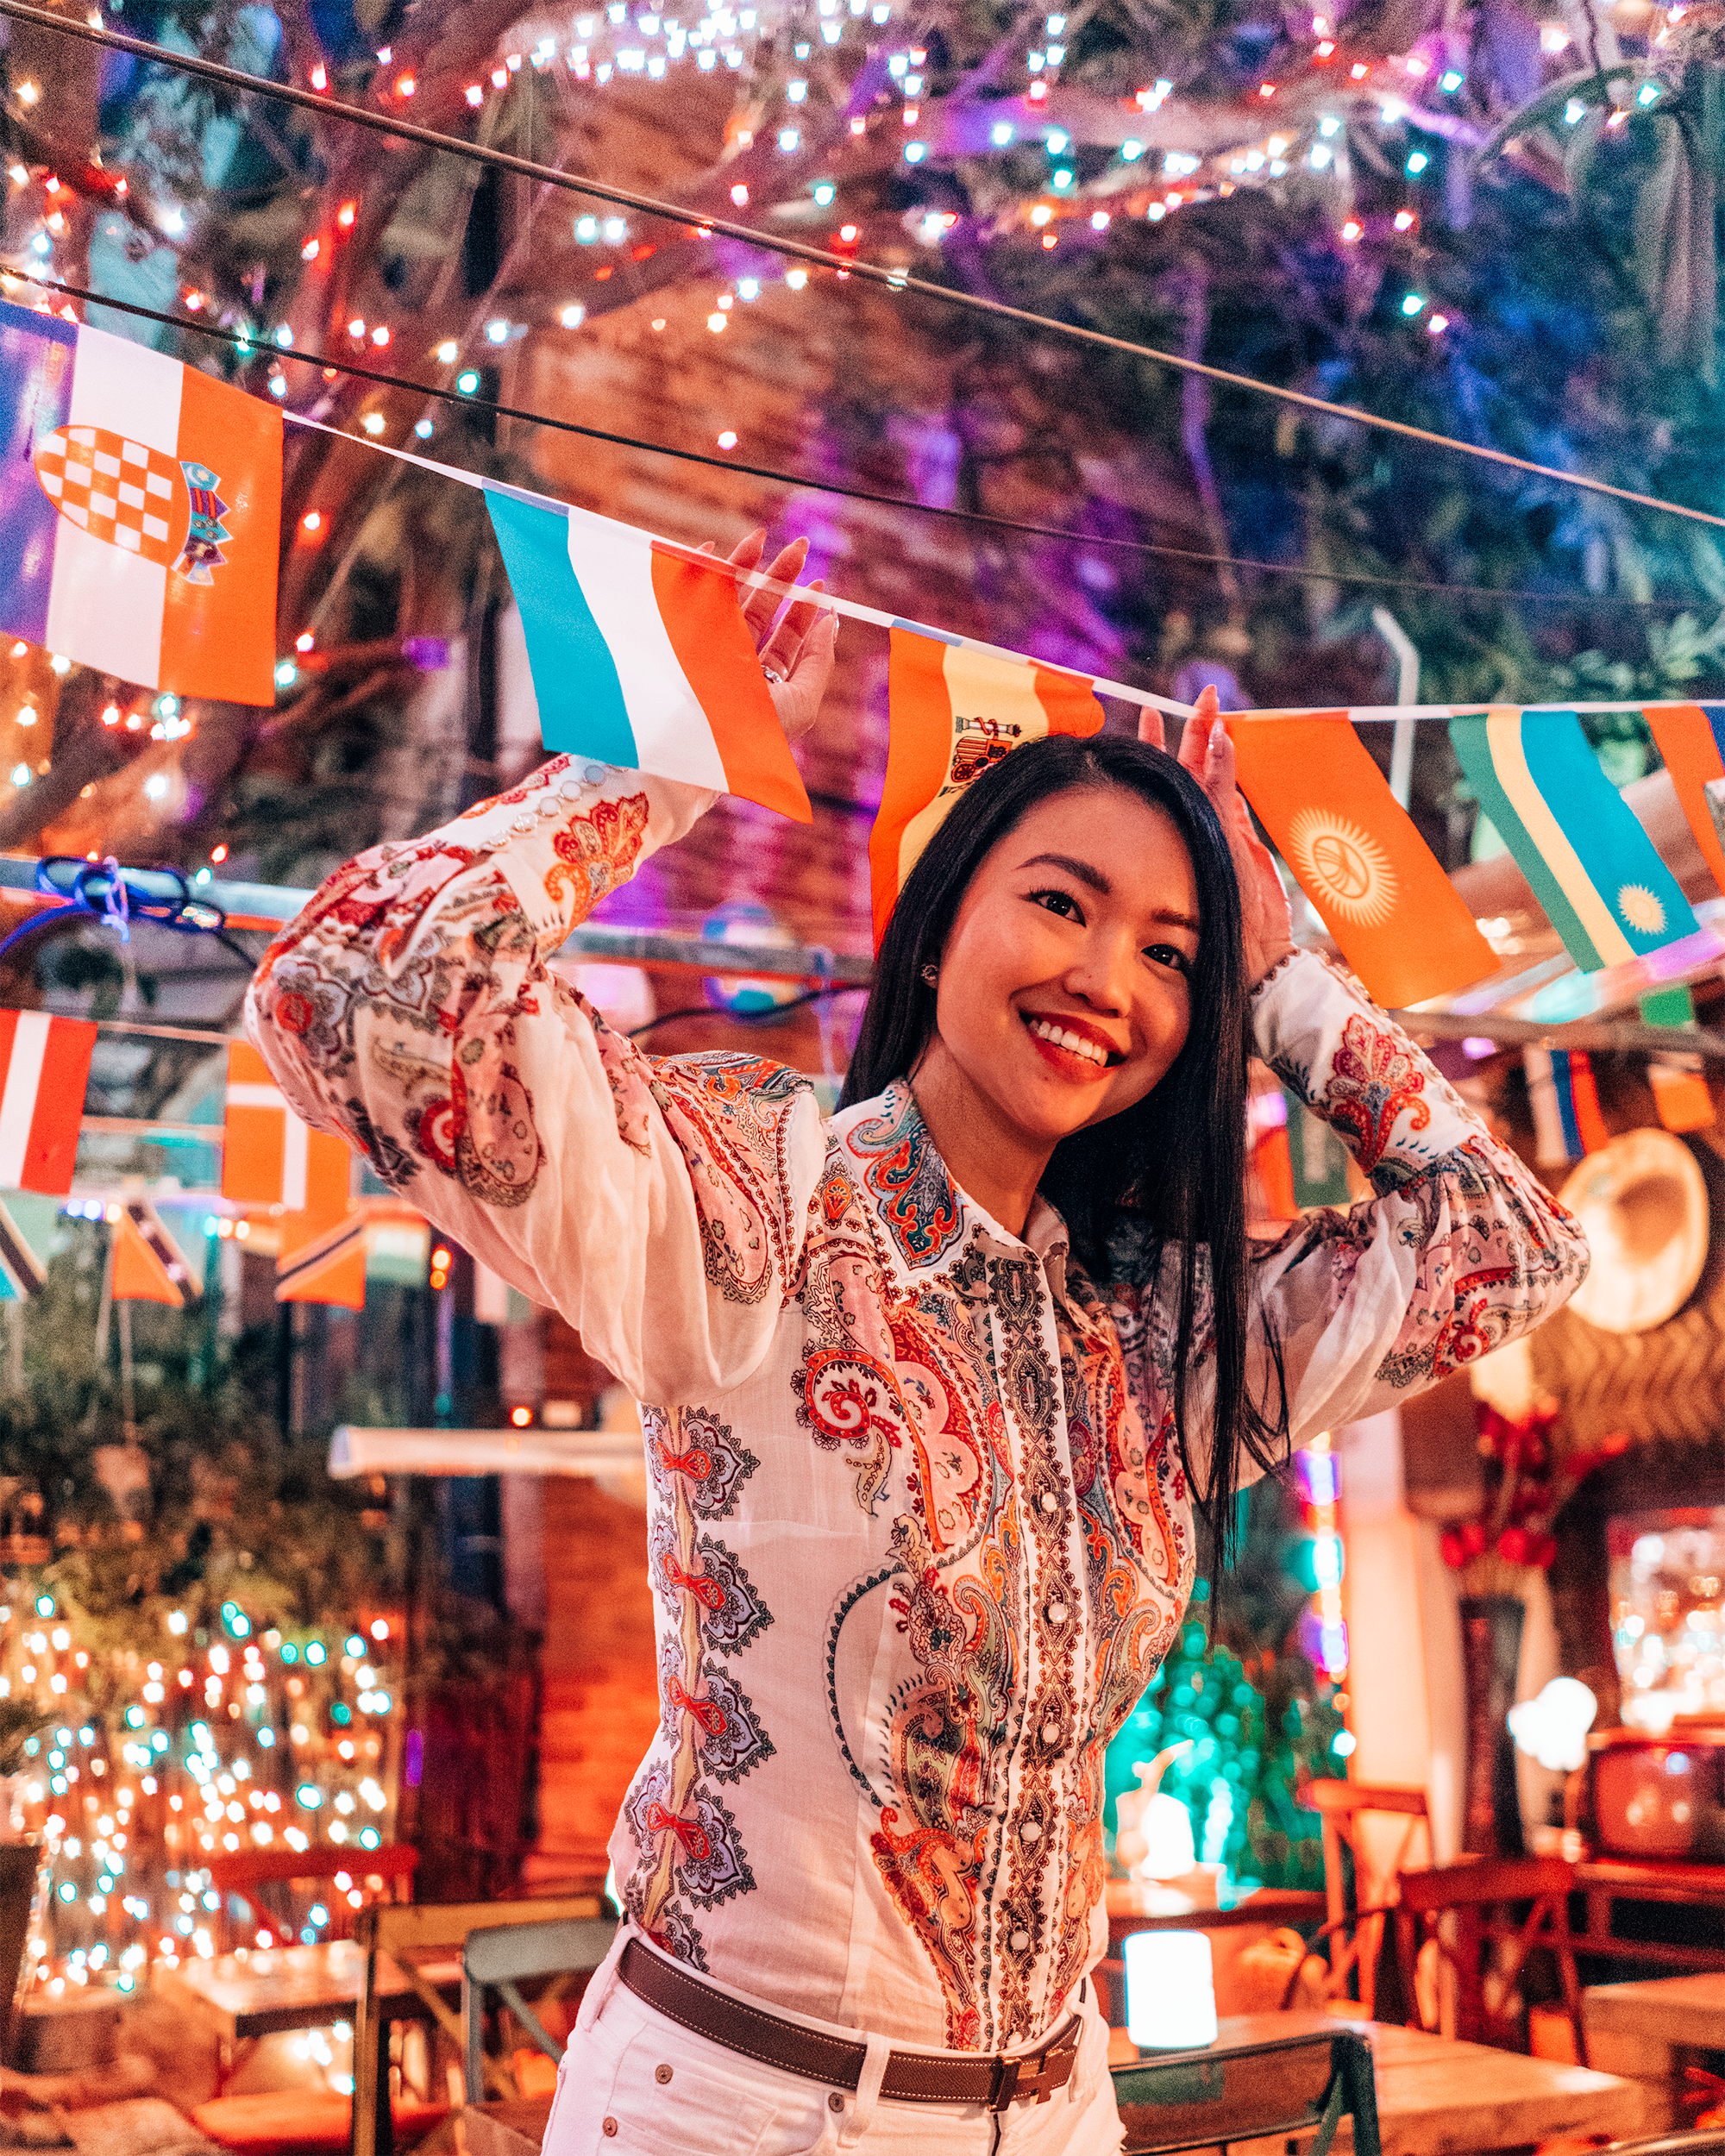 Reveling amidst neon lights in Rambler, a traveler's bar tucked away in Tianzifang.